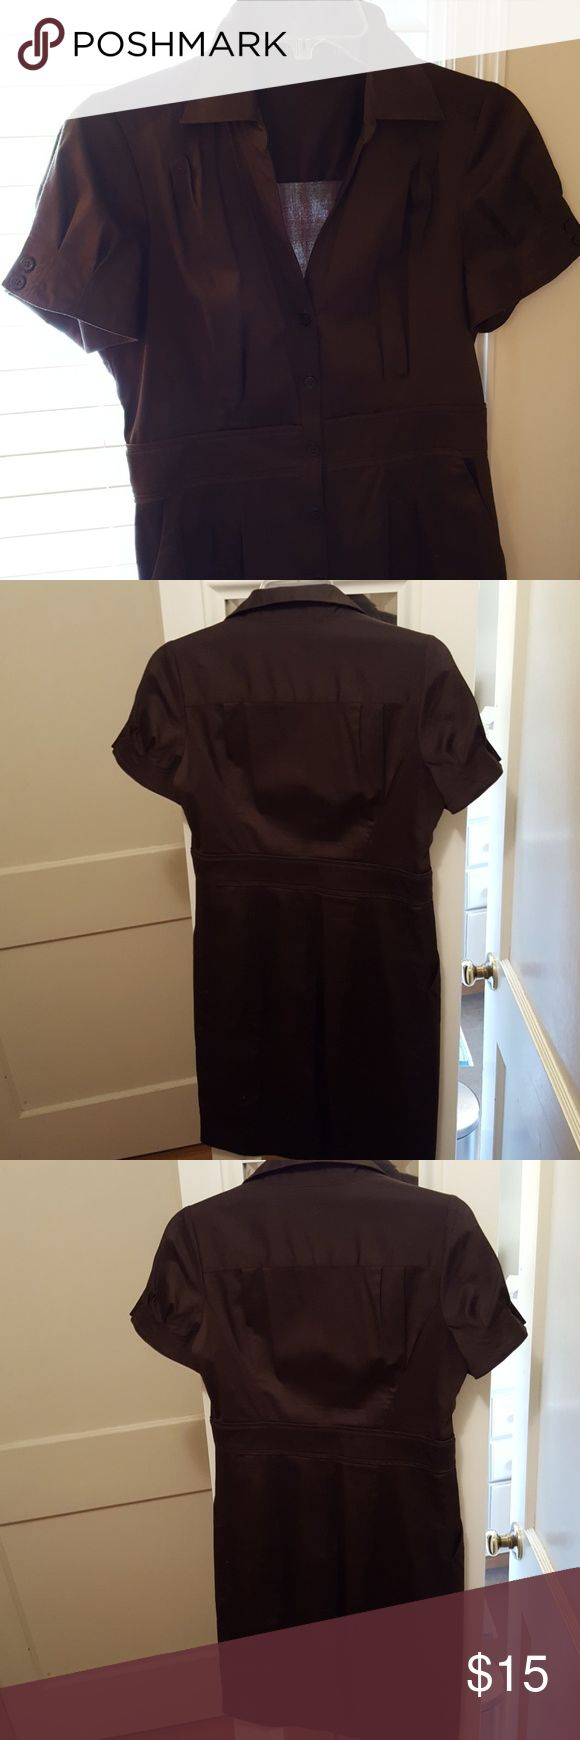 The Limited Dress Short sleeve, 2 front pockets, nice dress for the office, 97% cotton 3% spandex The Limited Dresses